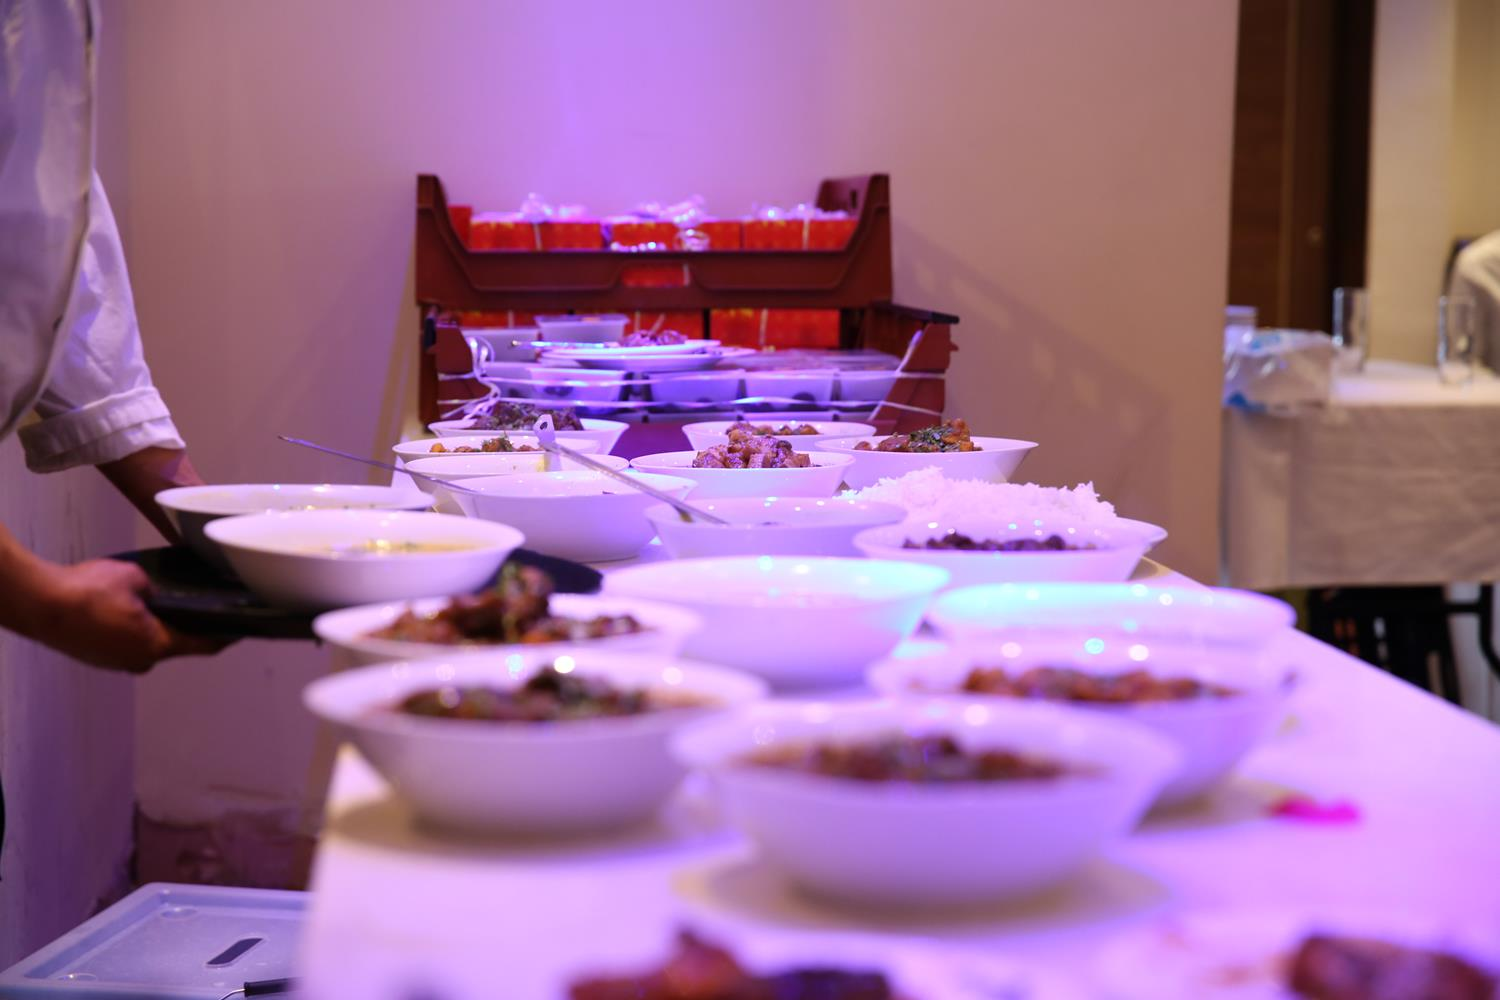 Food at an Indian Wedding Dinner by MAKSAM Photography